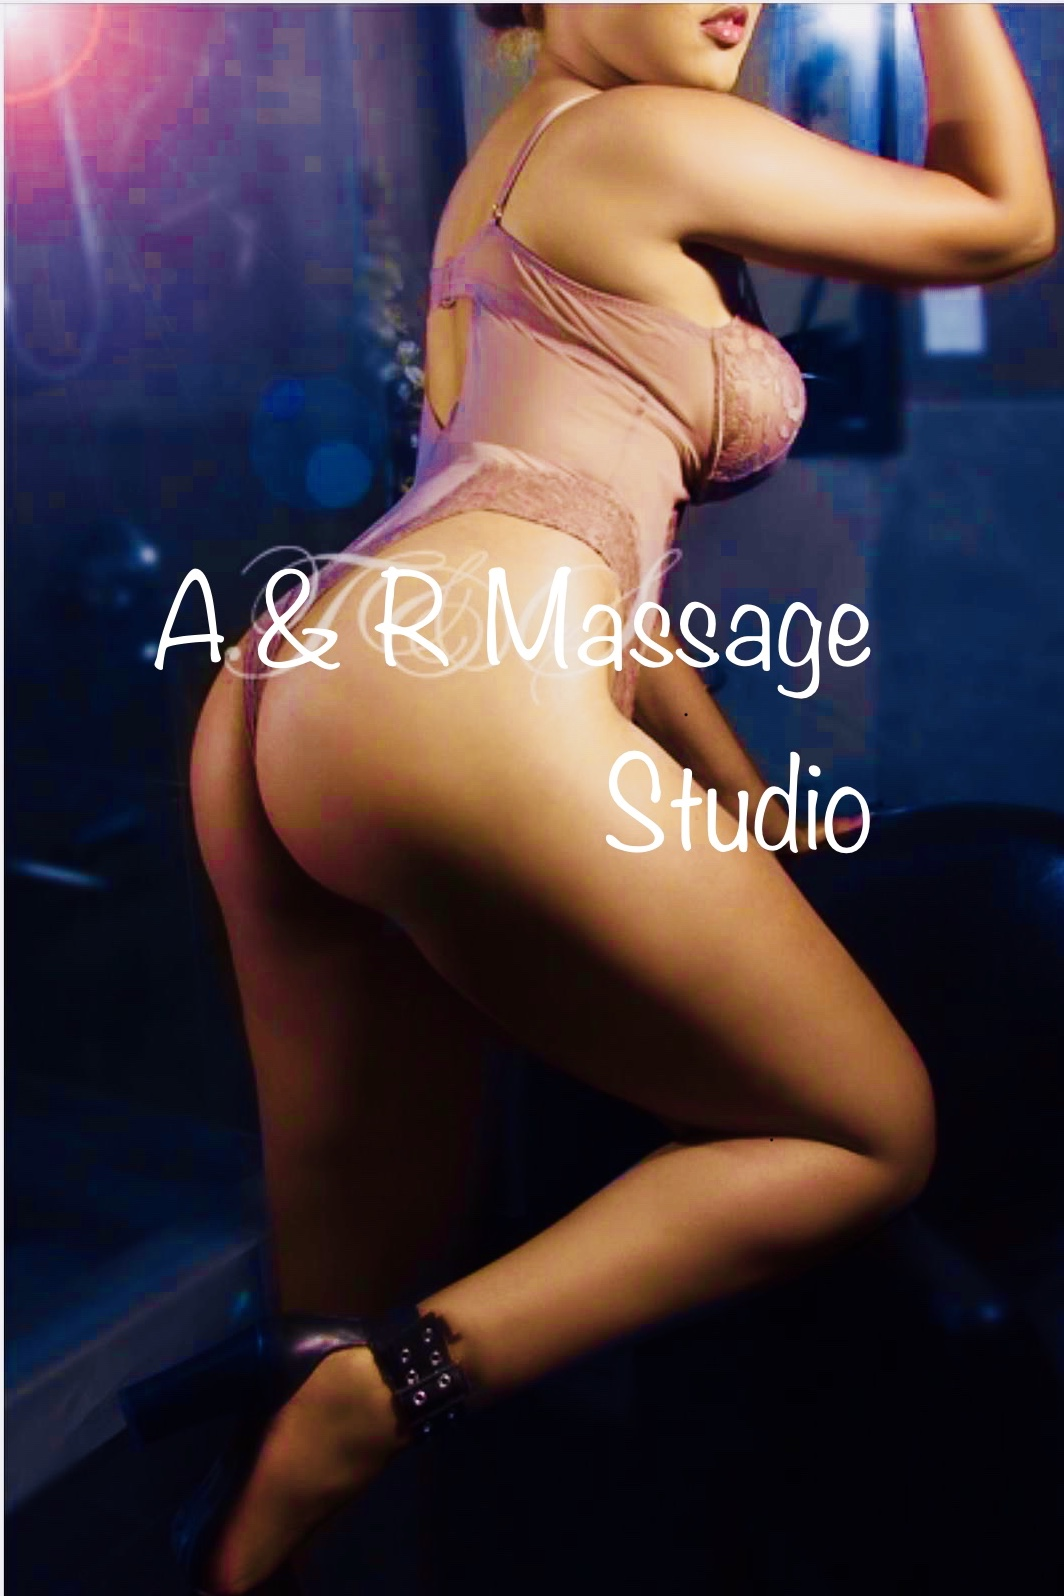 ★* ULTIMATEPLAYMATE.COM *★★•NAUGHTY ★•CUM MAKE YOUR CHOICE •★ NO RUSH •★FEEL ROYAL •★ONLY @A&R MASSAGE STUDIO •★